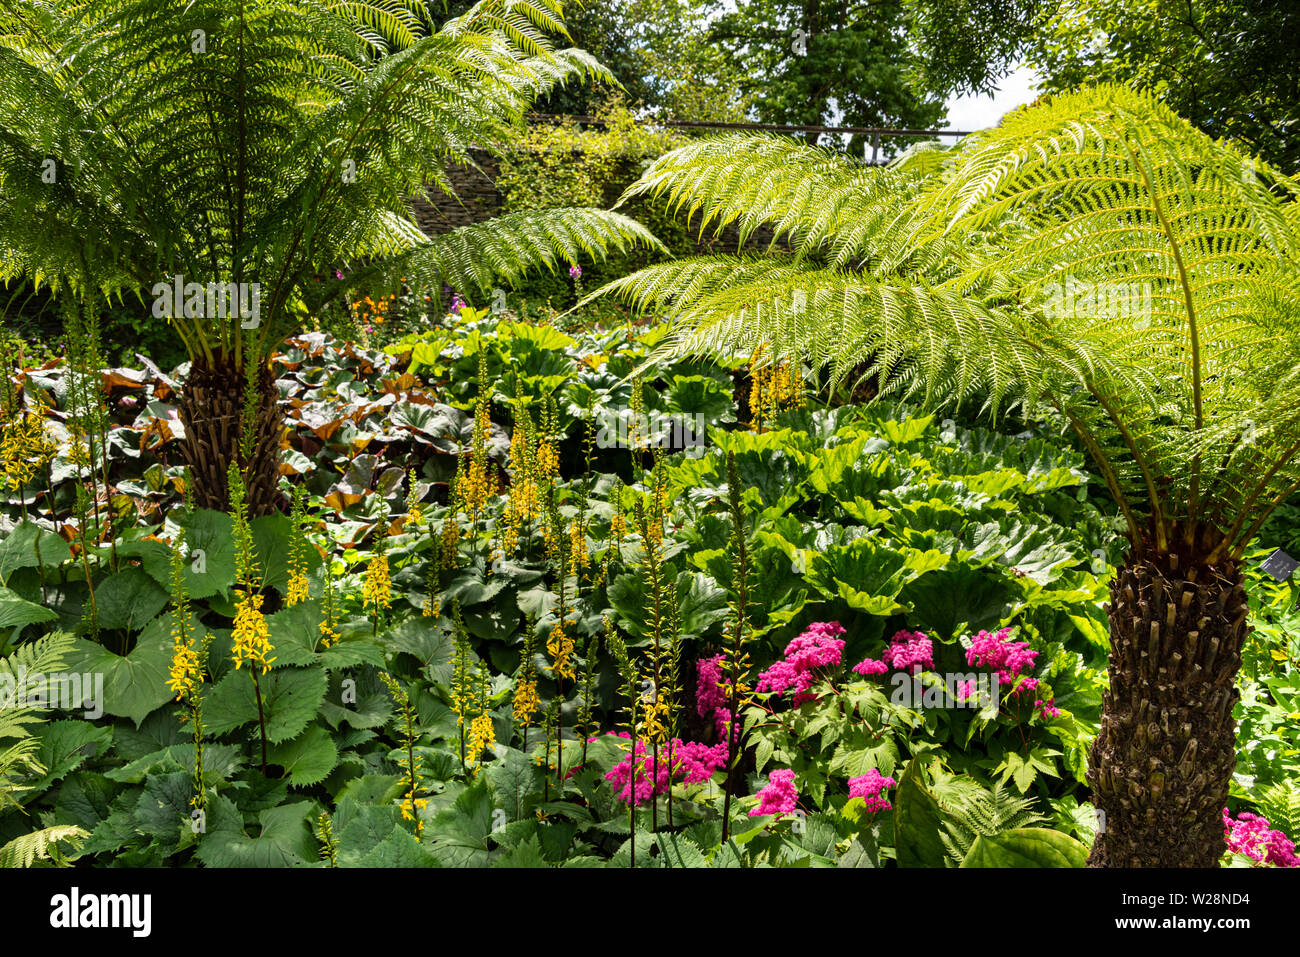 Tree ferns and flowers in the Robinson Garden RHS Hyde Hall, Essex. - Stock Image